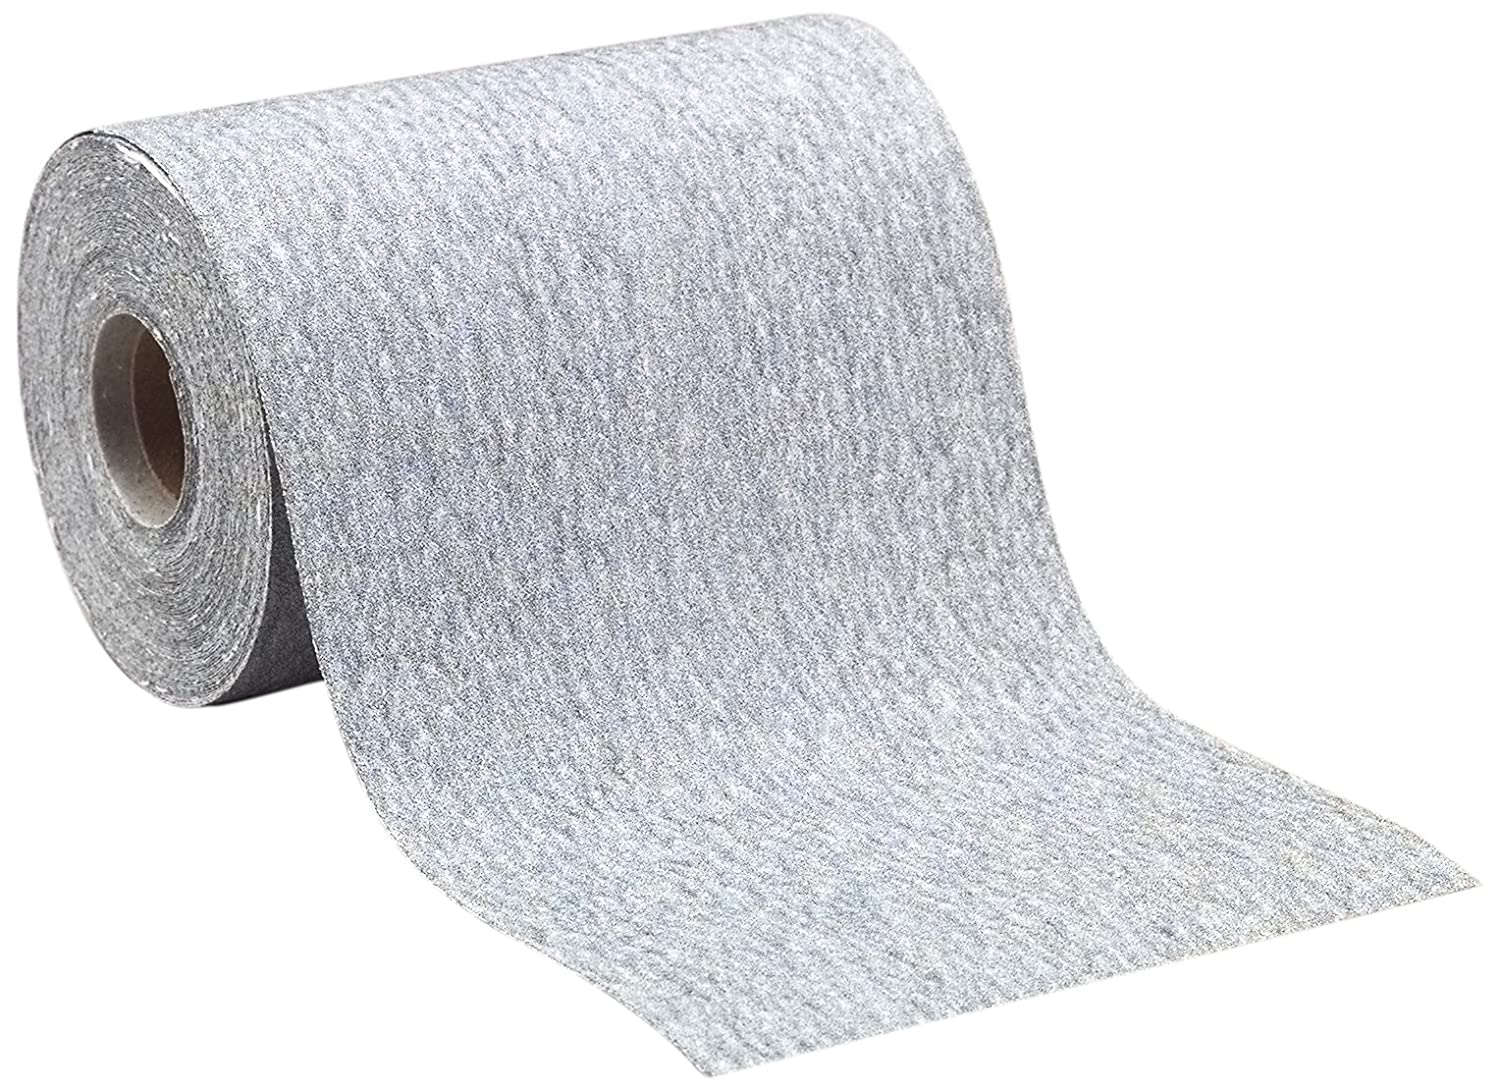 Sungold Abrasives 22-45320 320 Grit 10 Yards 4-1//2-Inch by 10 yards PSA Rolls Stearated Silicon Carbide